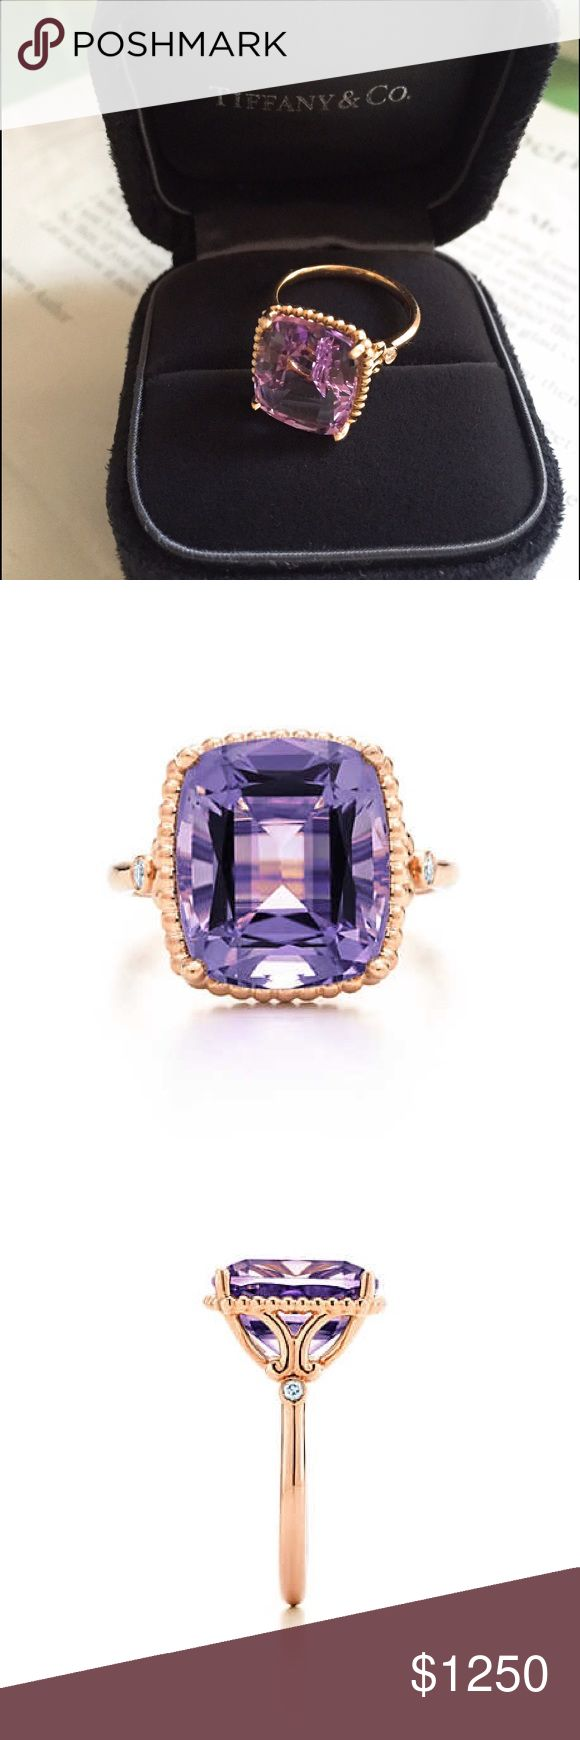 d6087ab8e ... 18k gold with a; tiffany co. sparklers amethyst ring ...